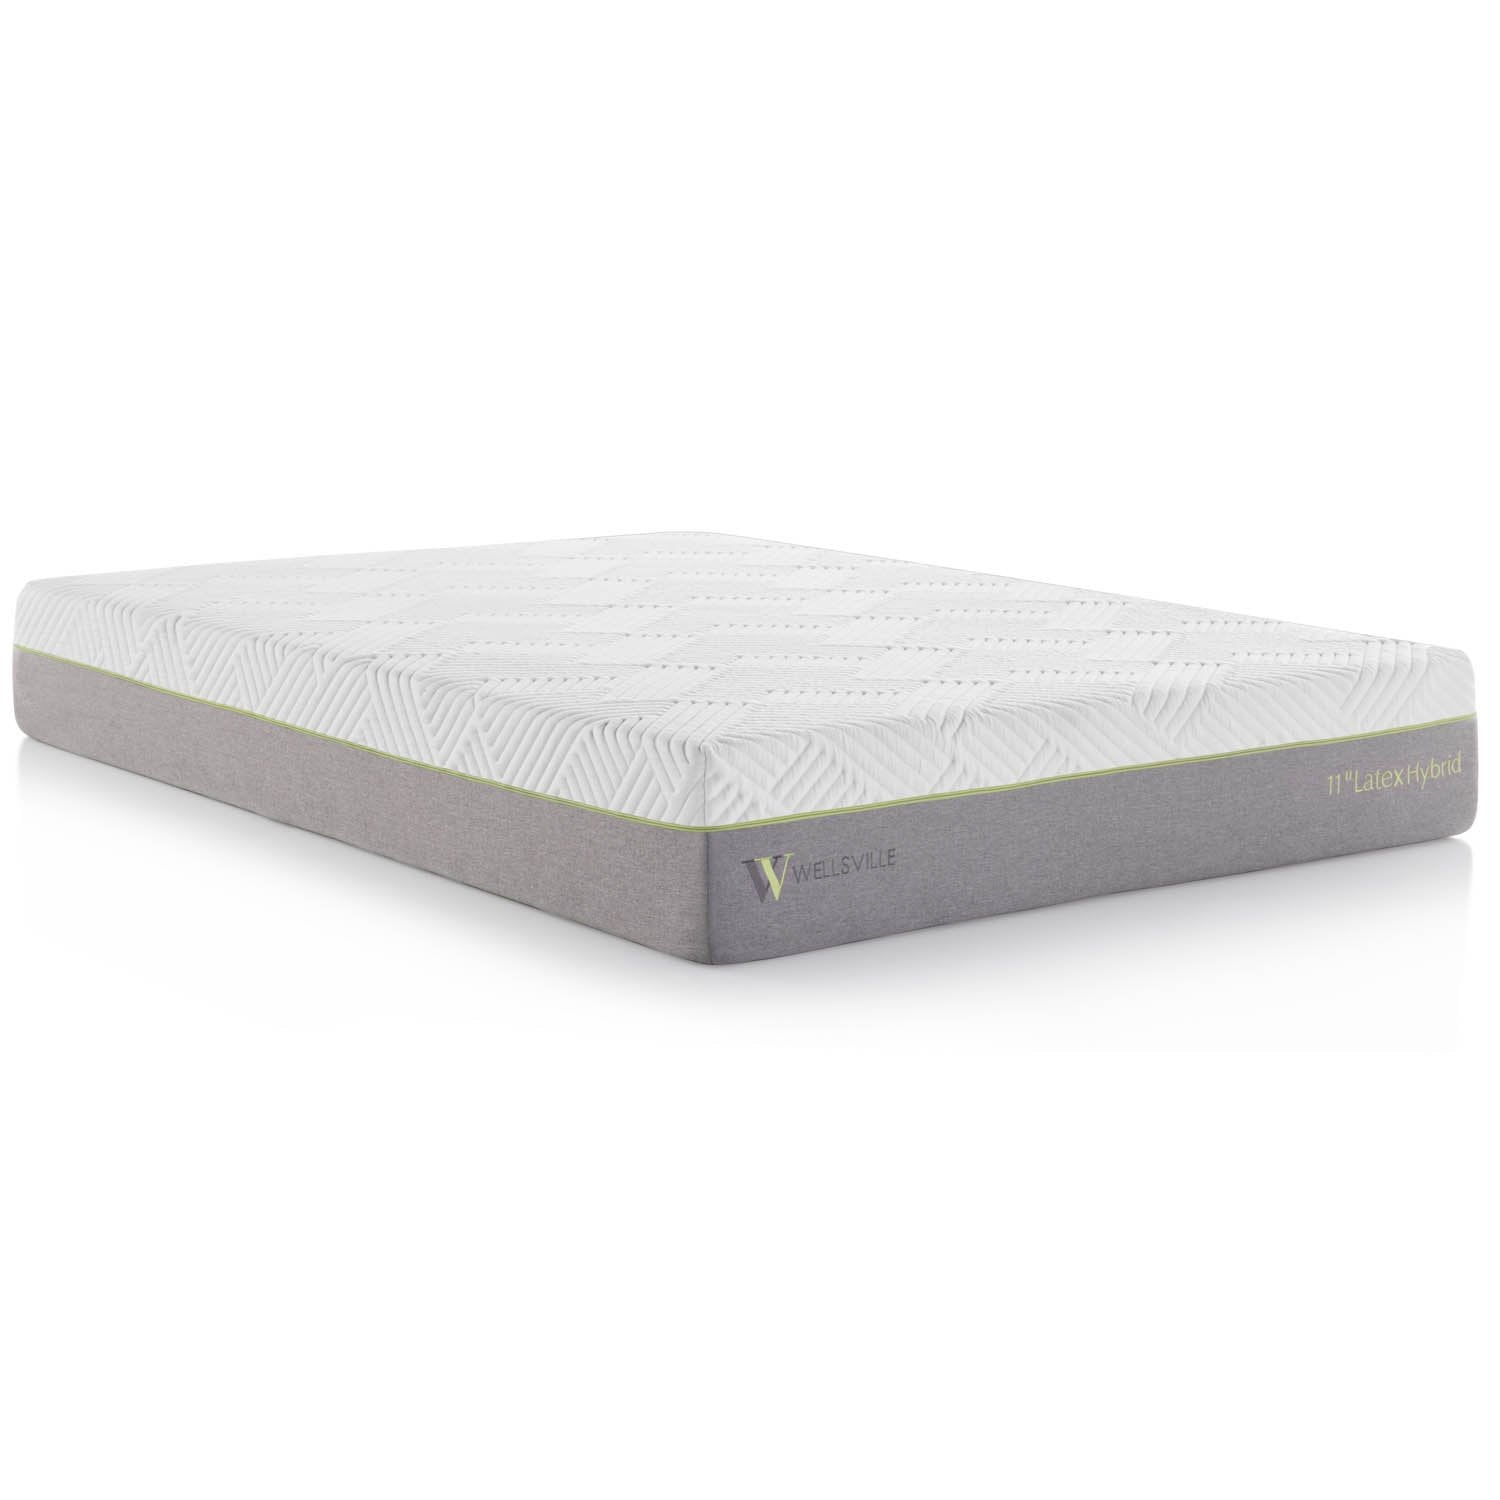 i dreamsupreme hybrid dealbeds mattress dream supreme com reverie